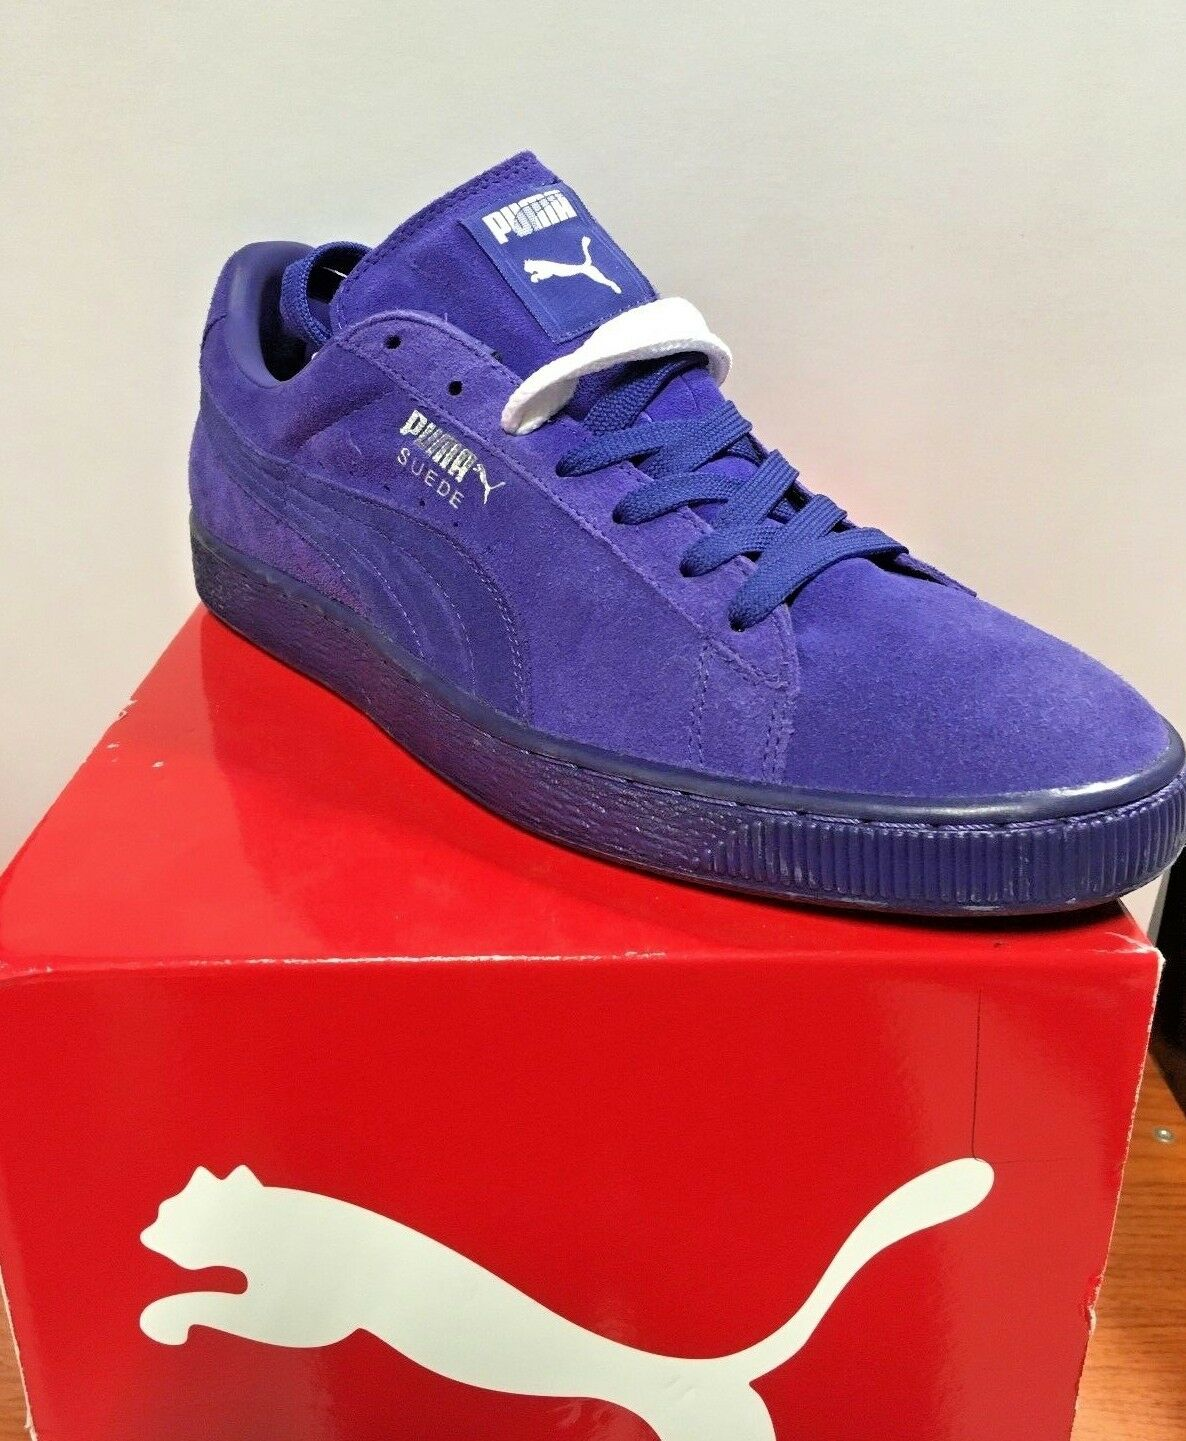 PUMA SUEDE CLASSIC (356568 13) COLOR SPECTRUM BLUE (PURPLE) SIZES: 11.5 TO 13